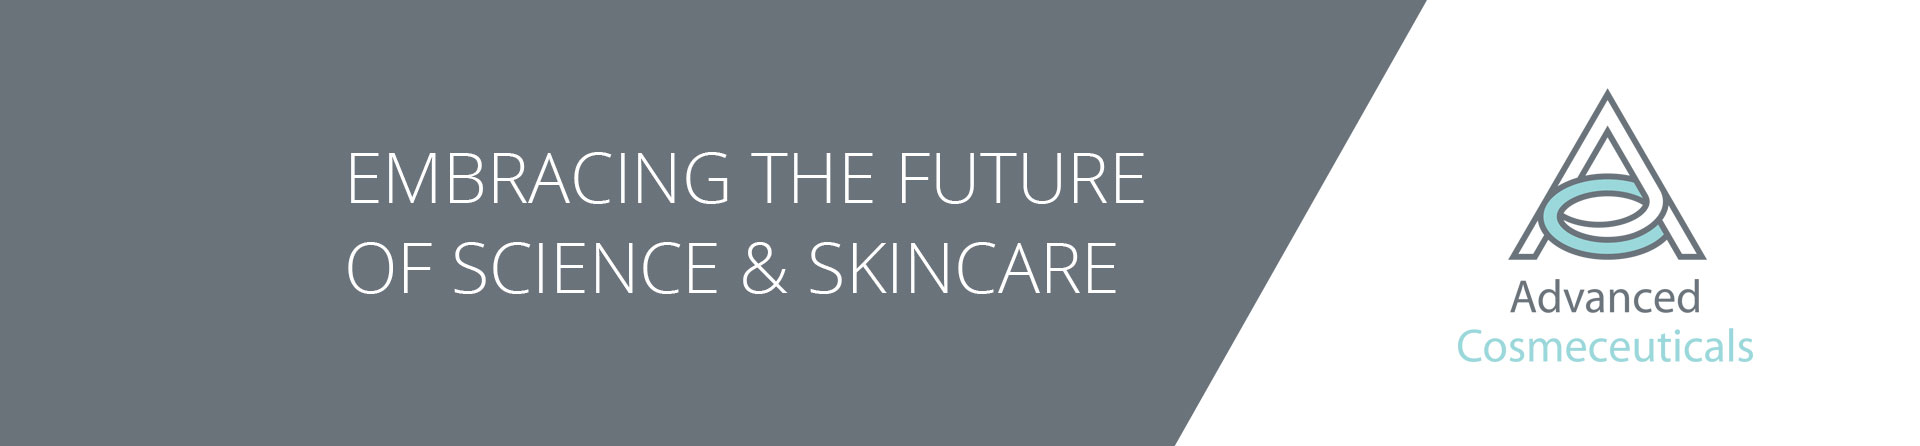 Advanced Cosmeceuticals - Skincare & Devices Distributor